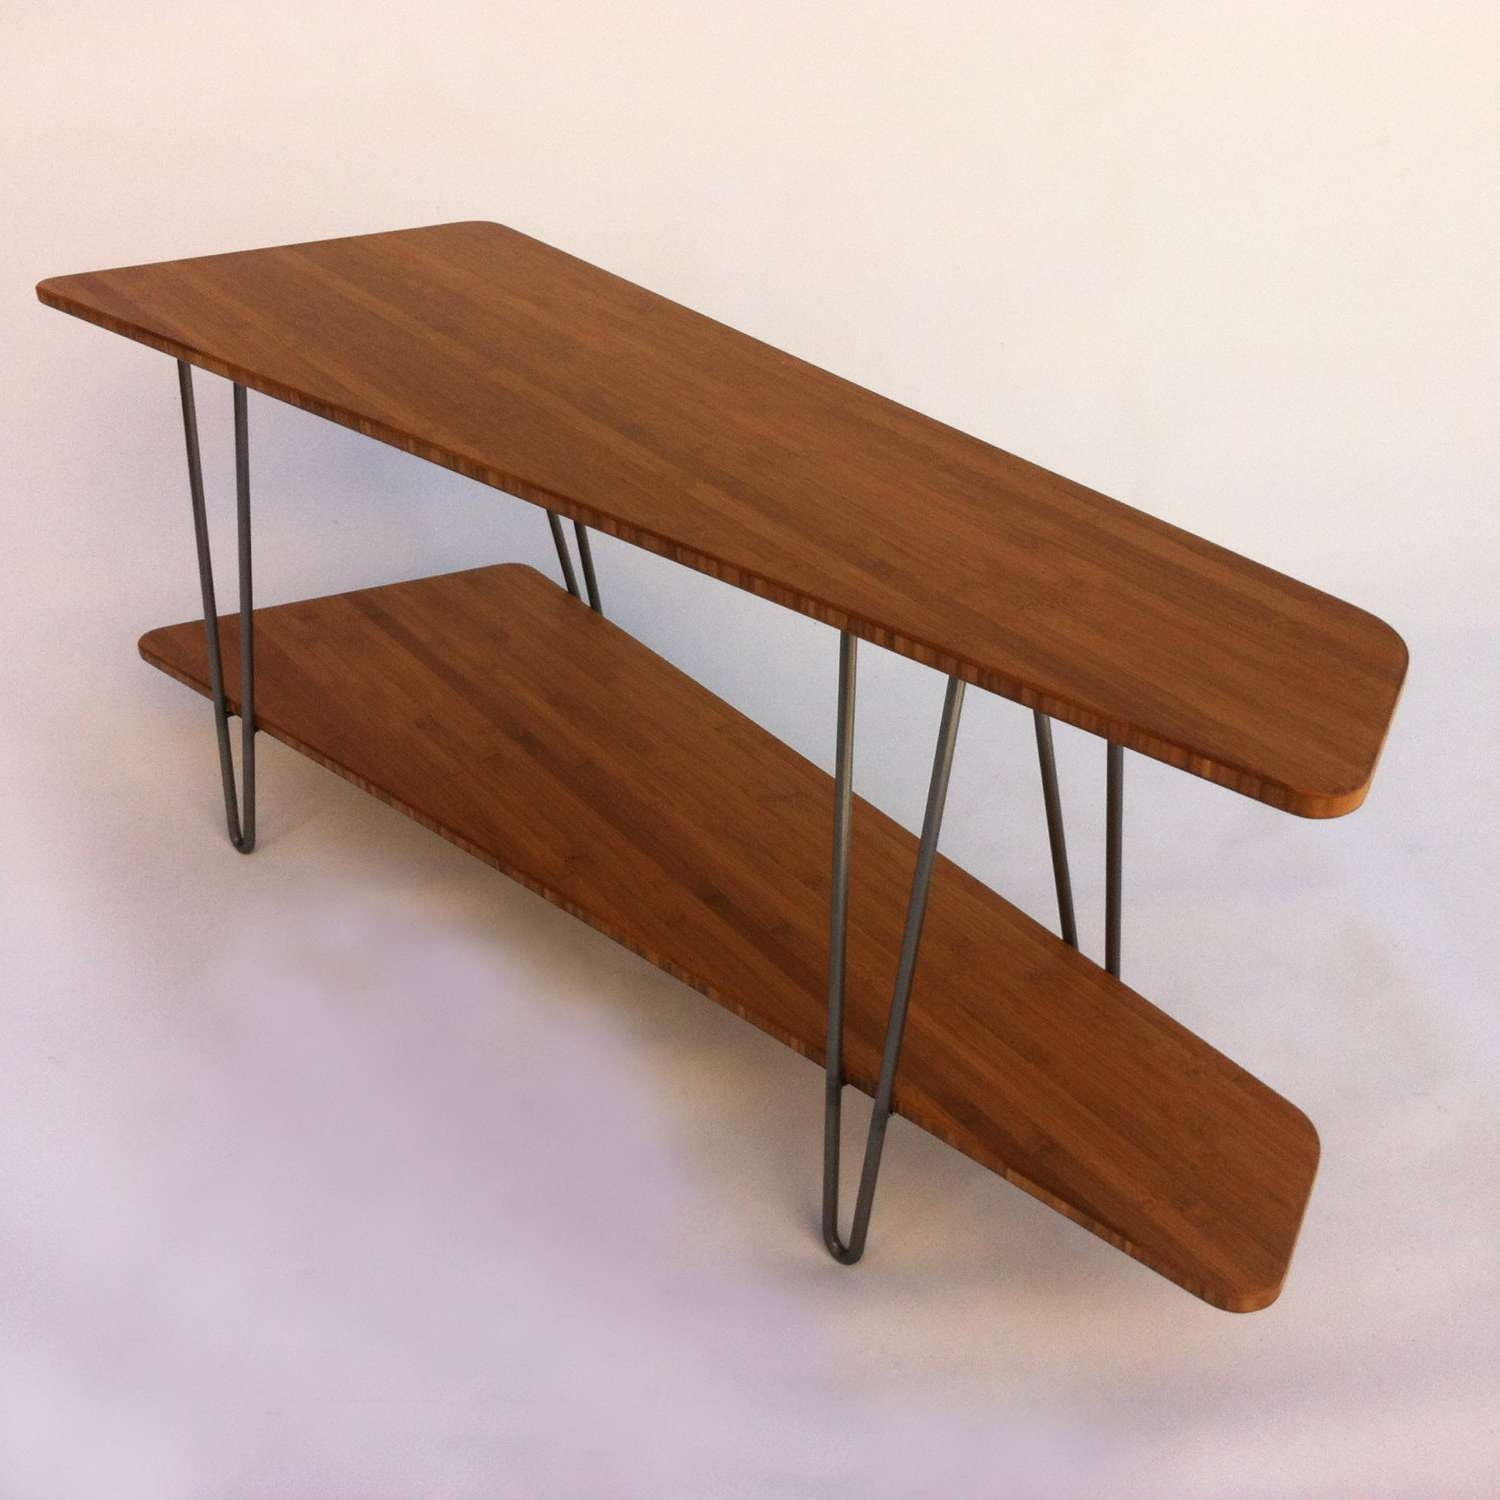 Contemporary Mid Century Modern Tv Stand Media Console With Shelf Within Hairpin Leg Tv Stands (View 2 of 15)